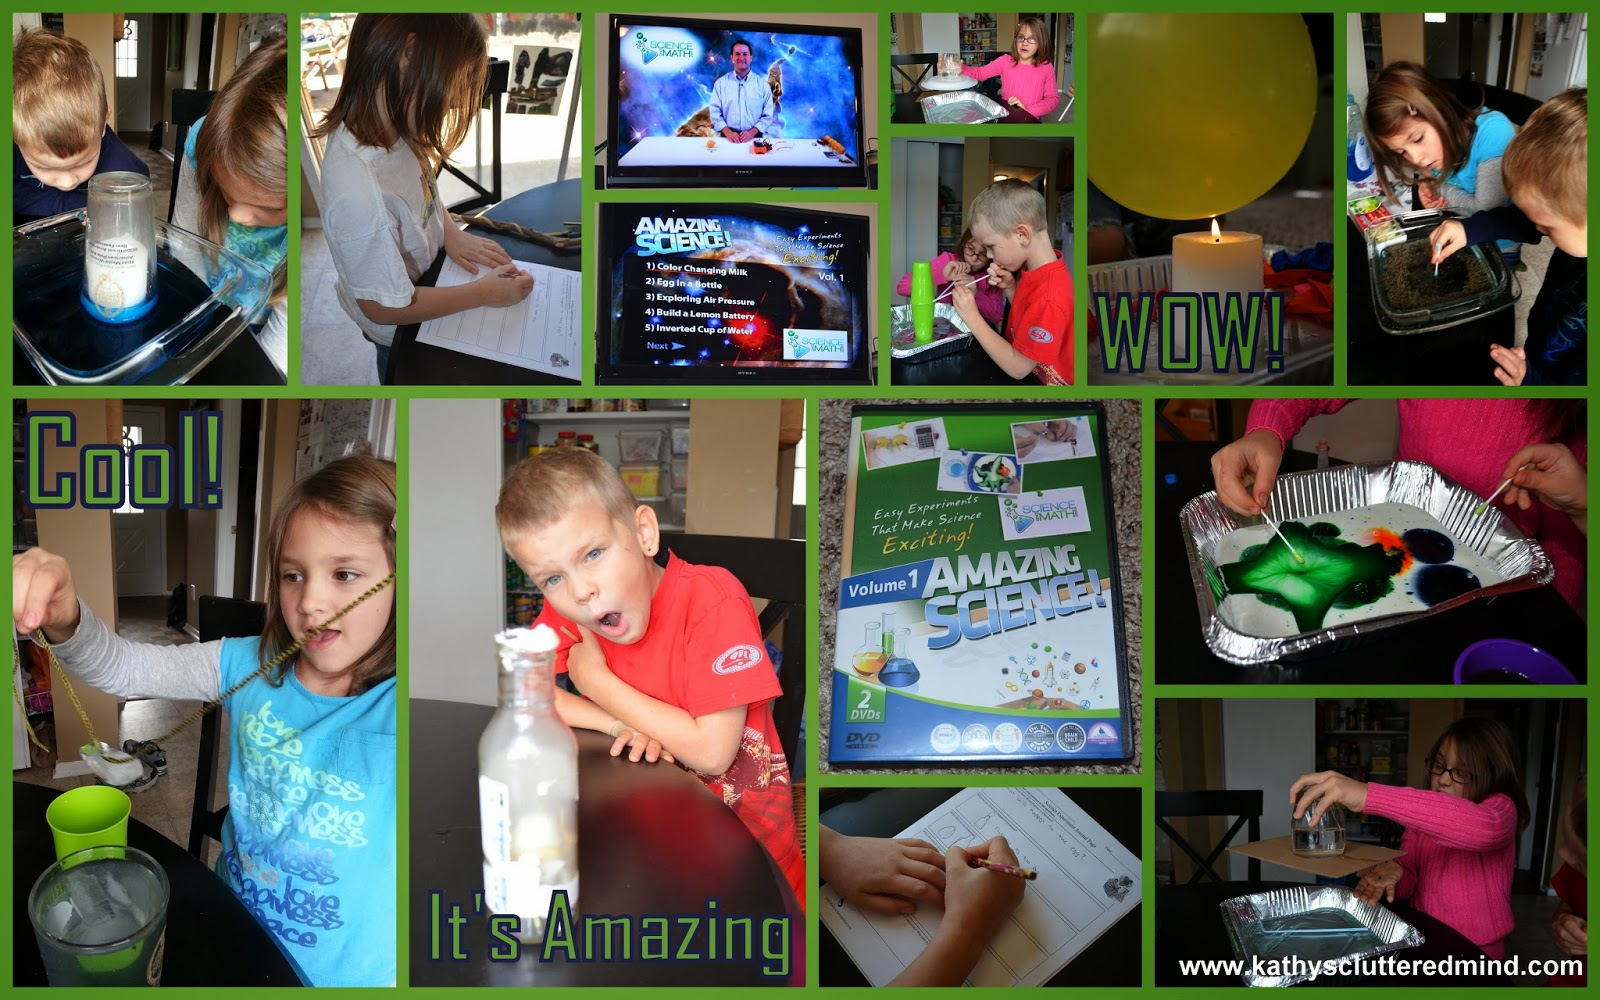 kathys cluttered mind scienceandmath com amazing science dvd review